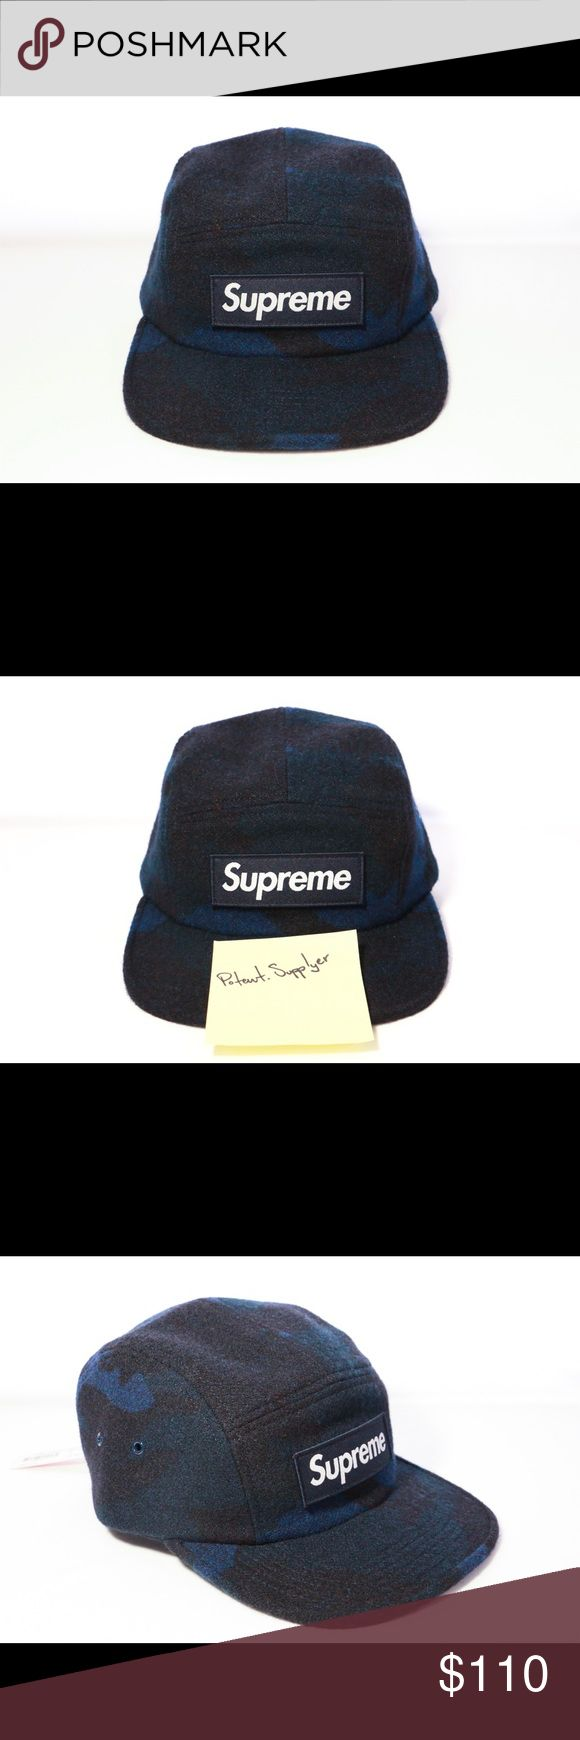 Supreme Camo Wool Camp Cap FW17 Navy Blue (OS) Supreme Camo Wool Camp Cap FW17 Navy Blue (OS) $100 Brand new DS SUPREME BOGO hat. 🔥 Check out IG @potent.supplyer for more!        Supreme Jordan Nike kobe 8.5 royal blue shoes foams foamposite foamposites icy ftp palace Tommy Hilfiger jacket red vintage Supreme Accessories Hats